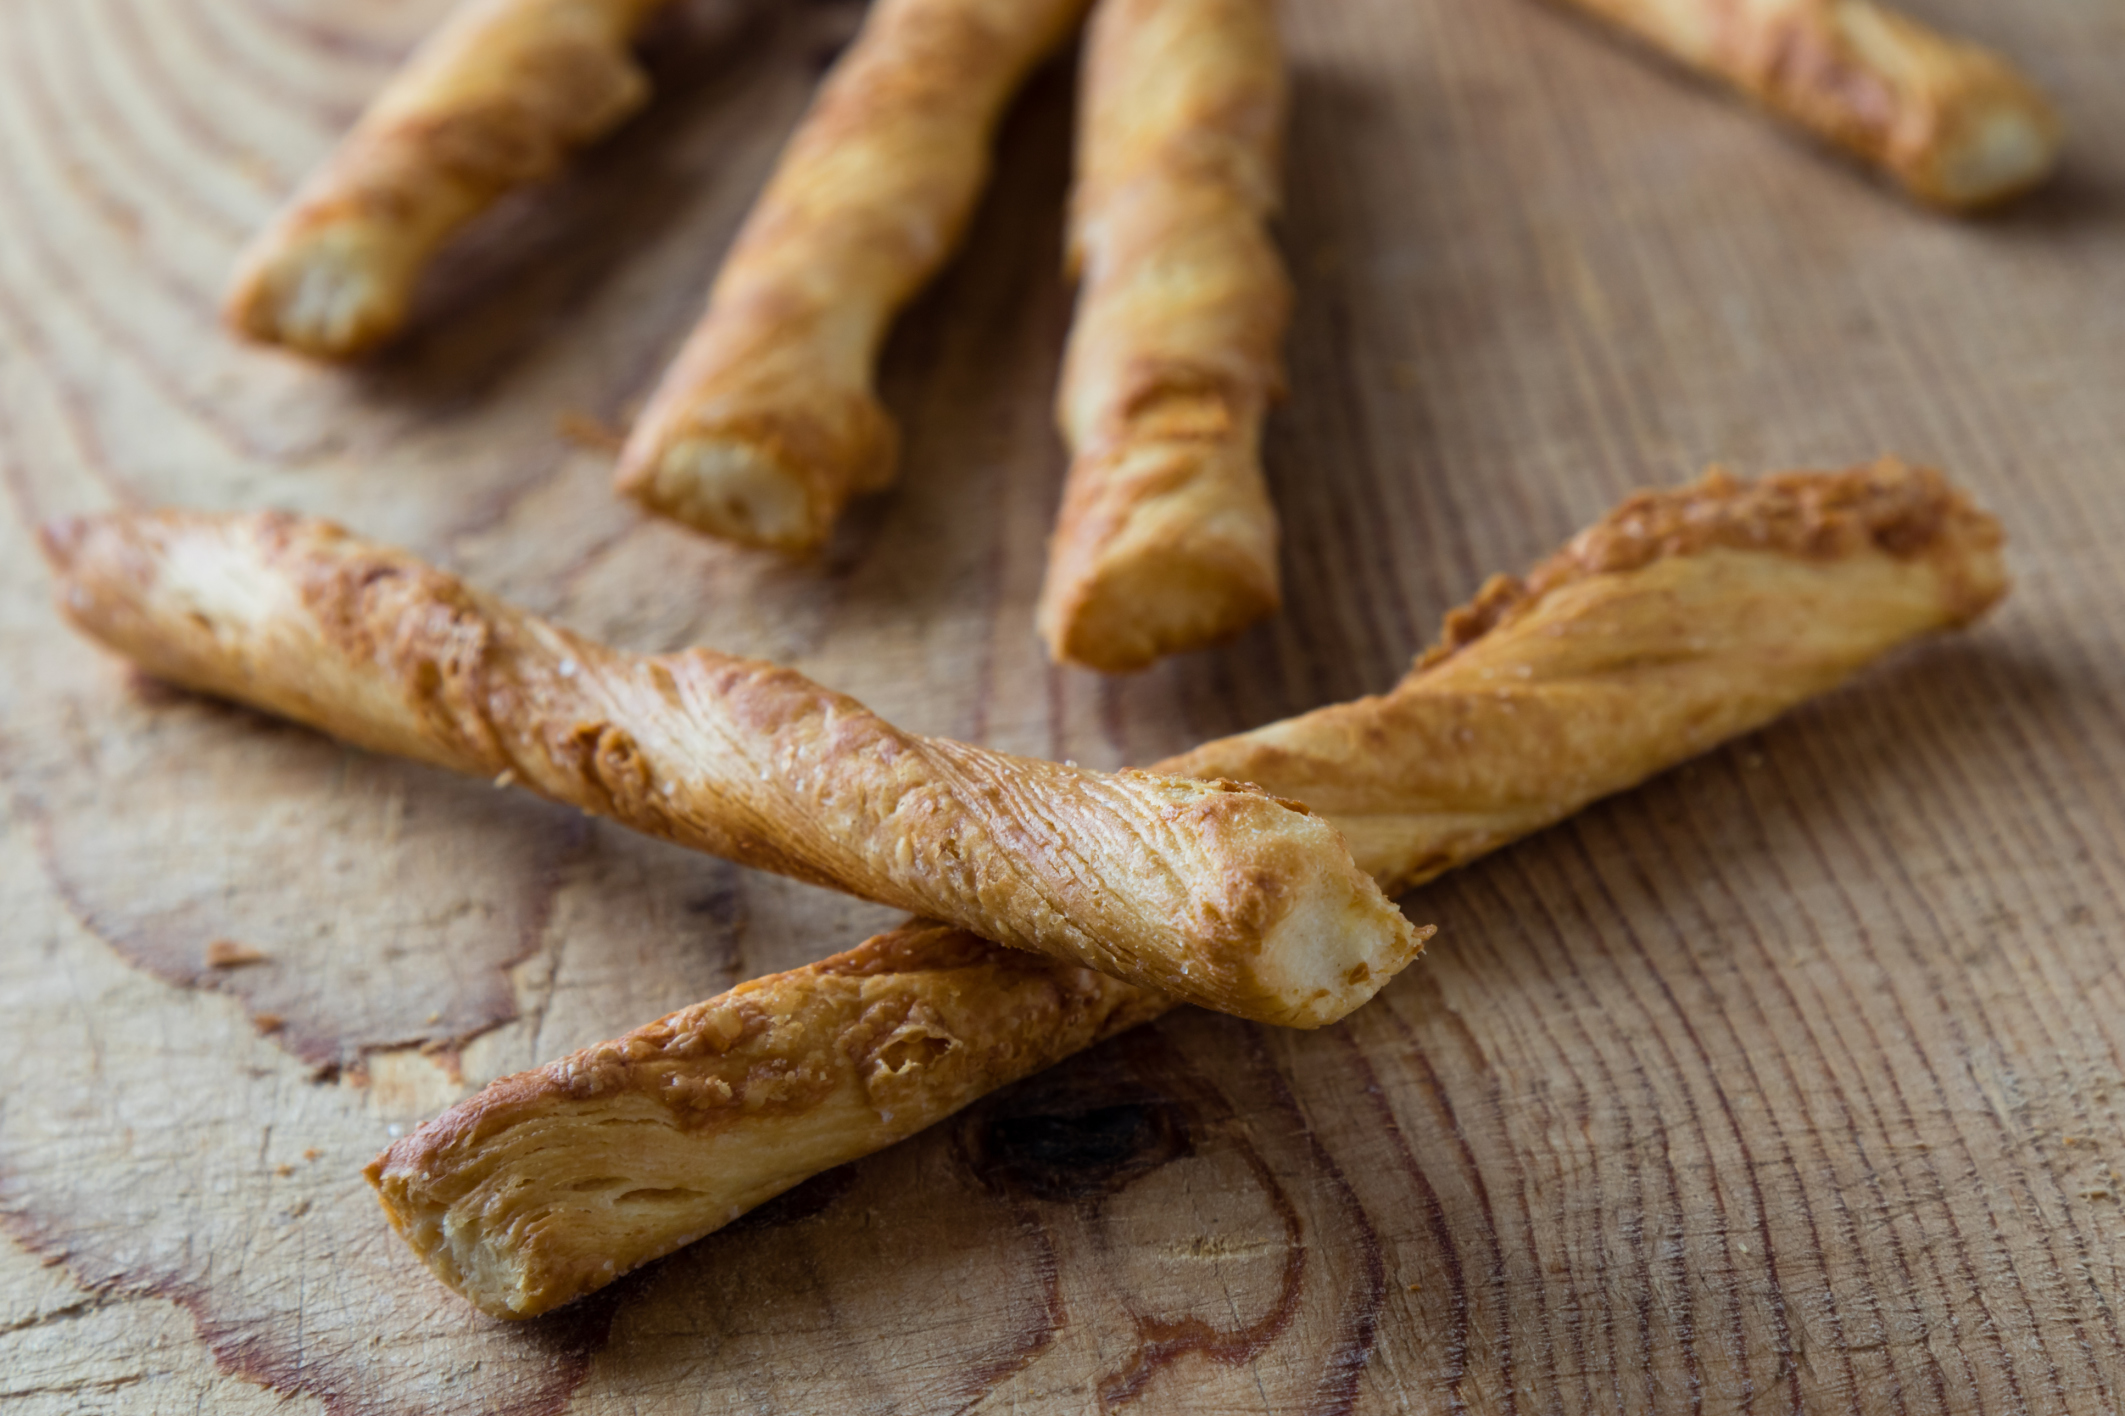 Olive Garden Breadstick Calories | Healthfully